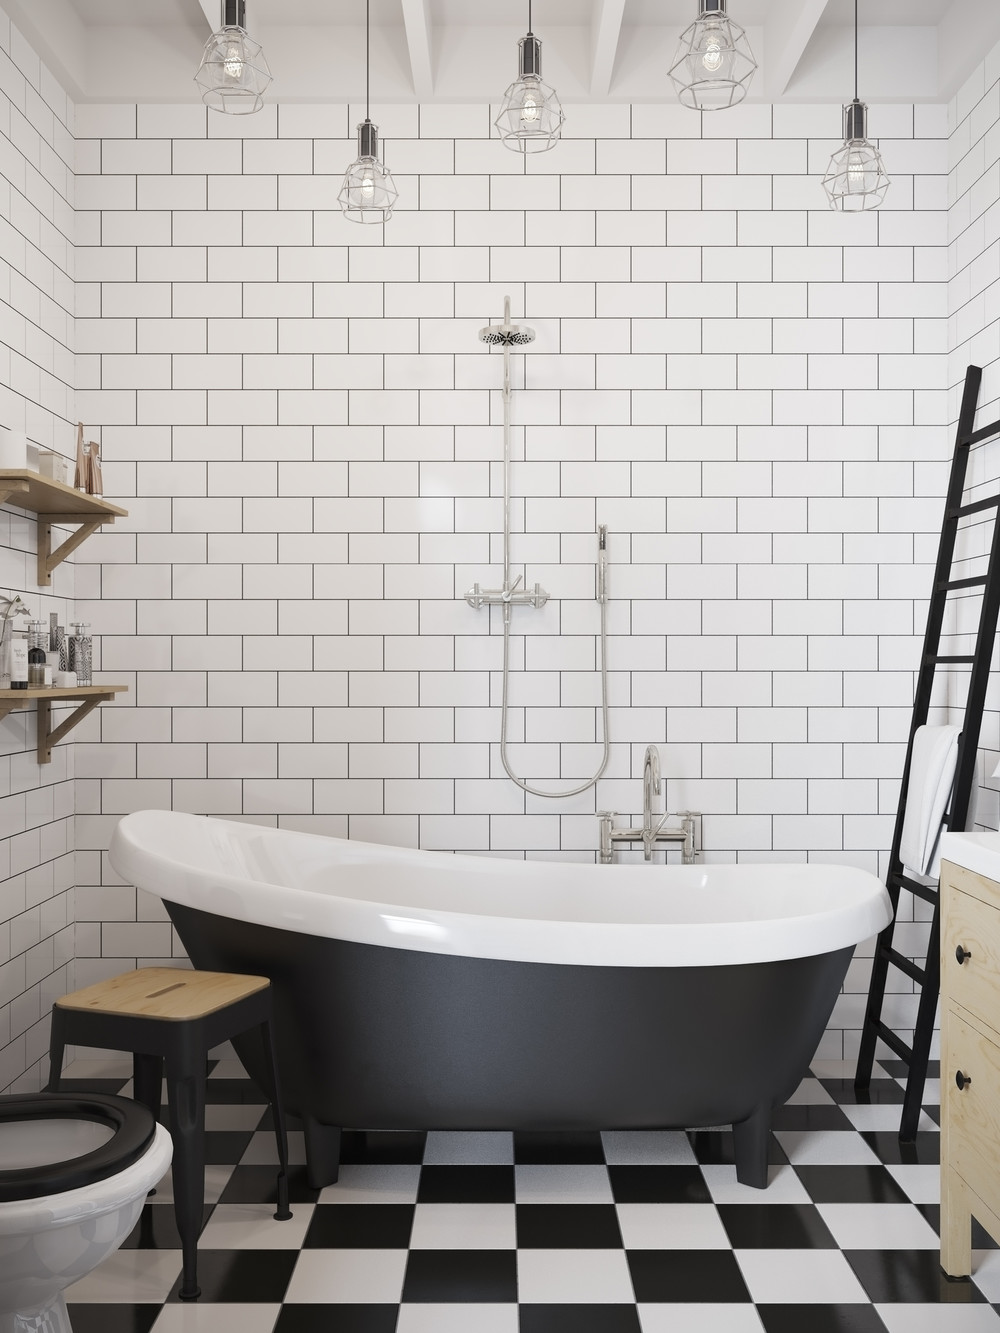 Checkerboard flooring is a great companion to subway tiles